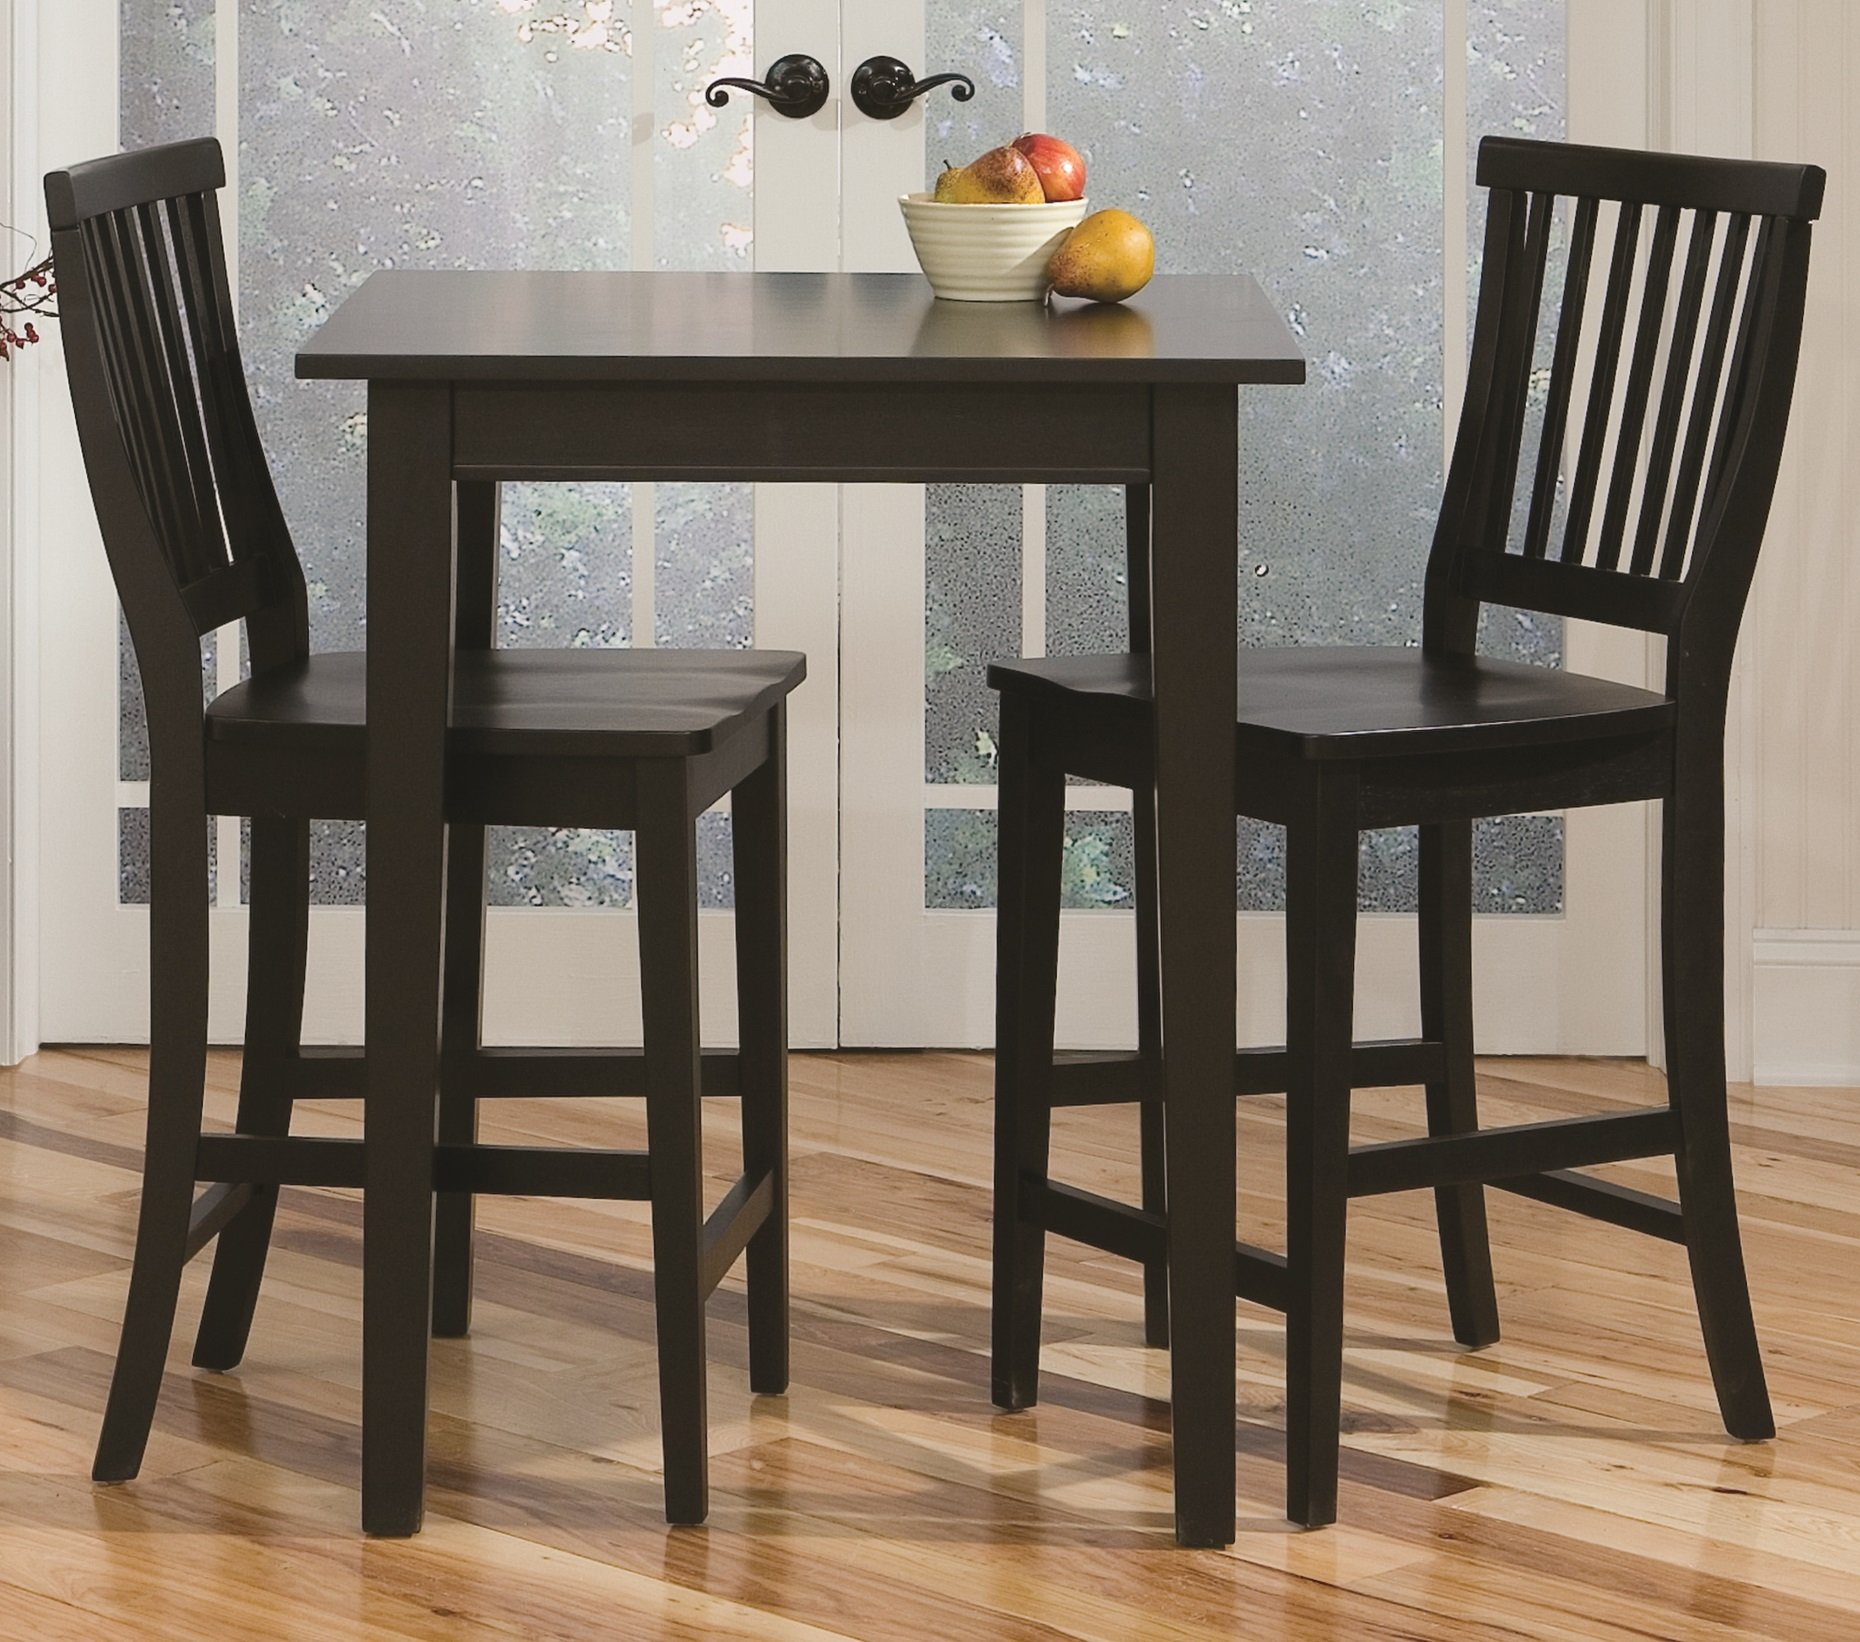 Home Style 5181-359 Arts and Crafts 3-Piece Bistro Set, Black Finish